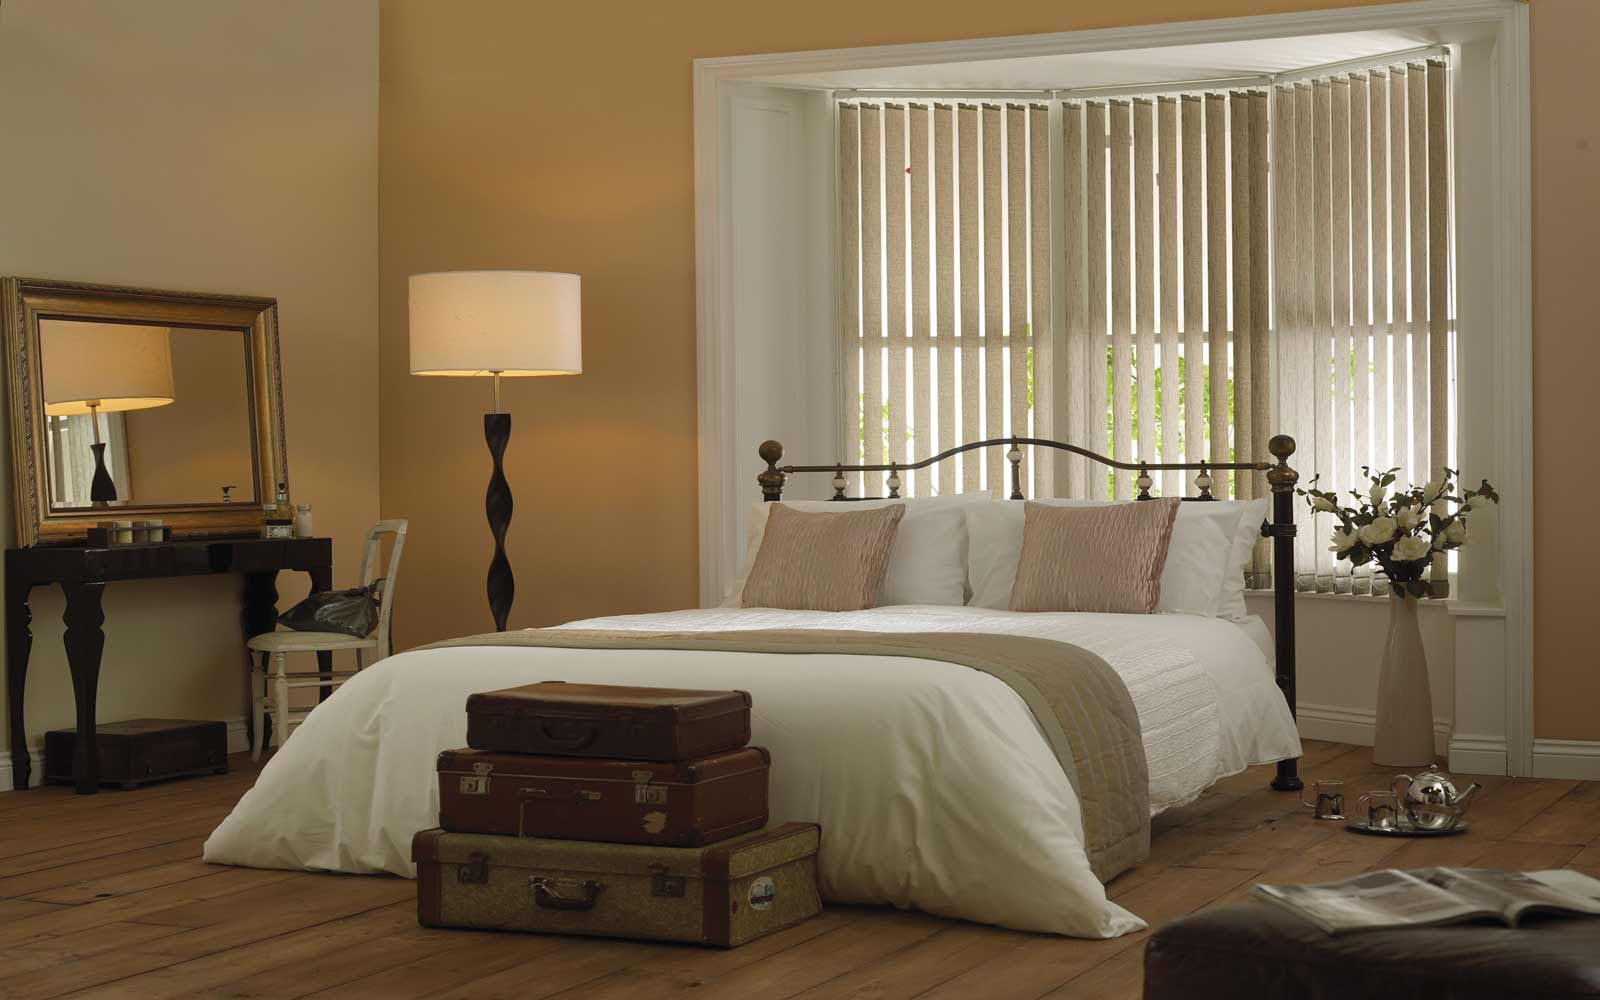 Bay Window Bedroom Vertical Blinds Surrey Blinds Shutters